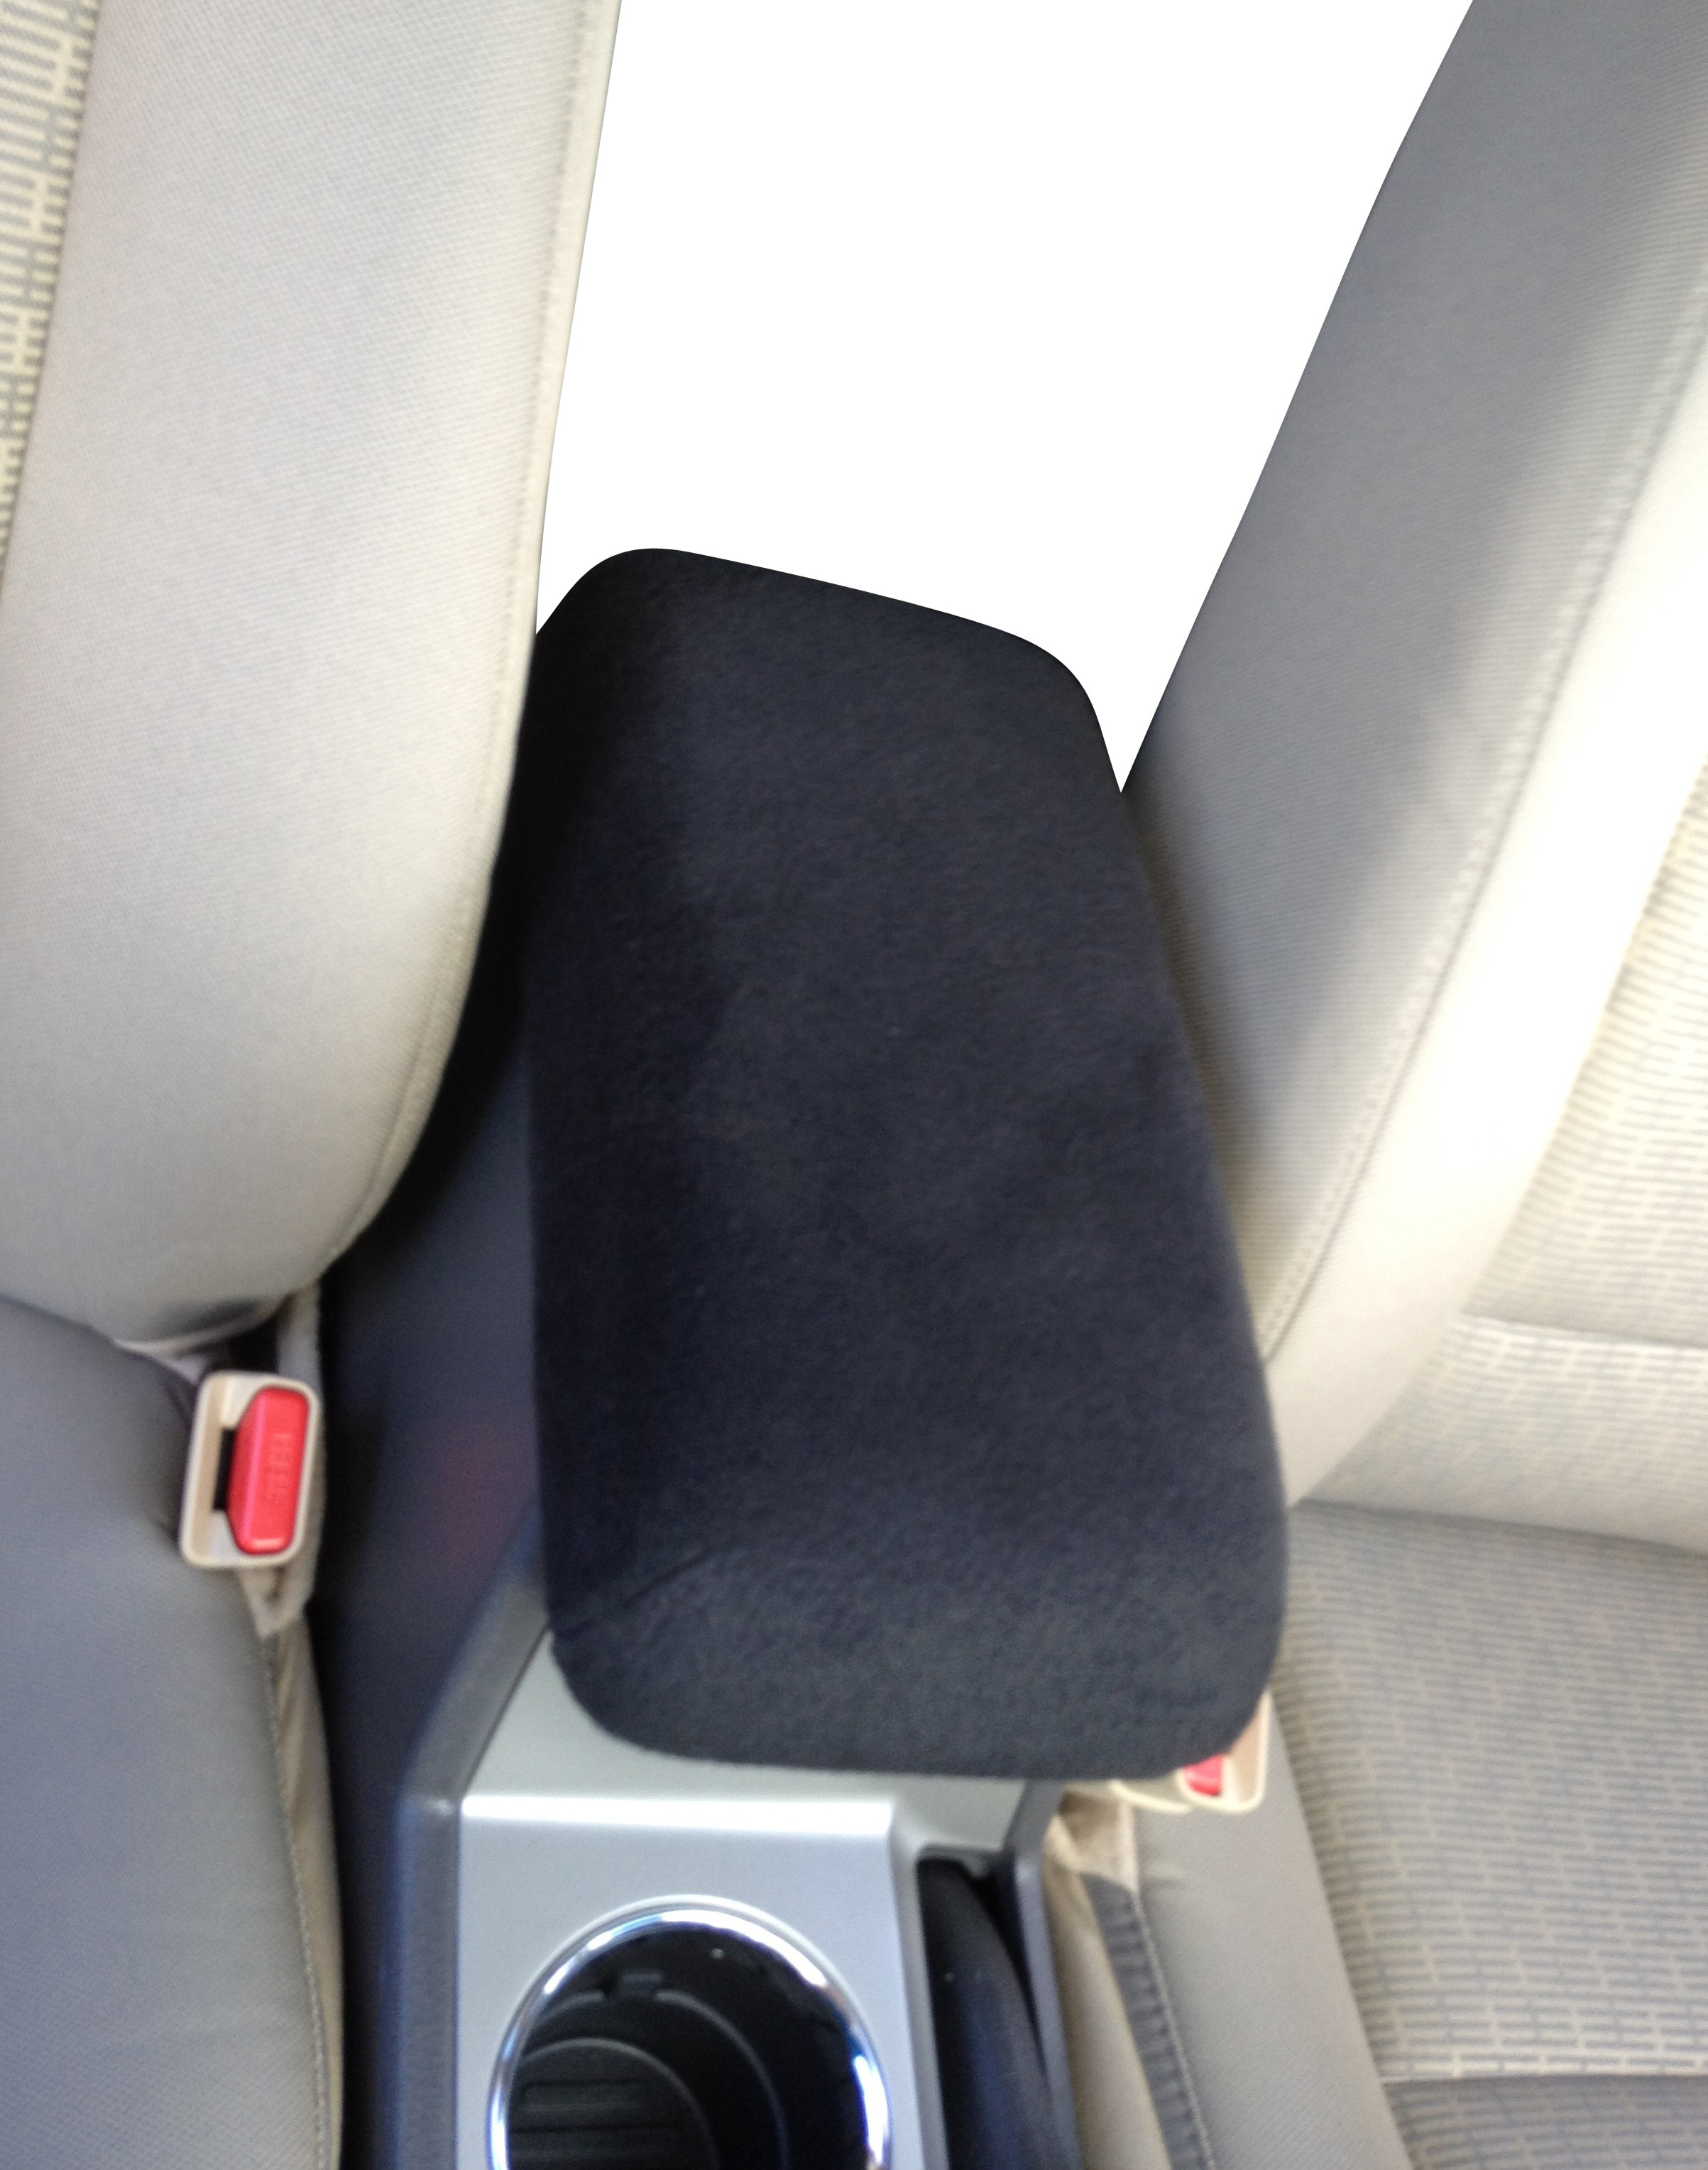 Fleece Console Cover- Chrysler 200 2011-17